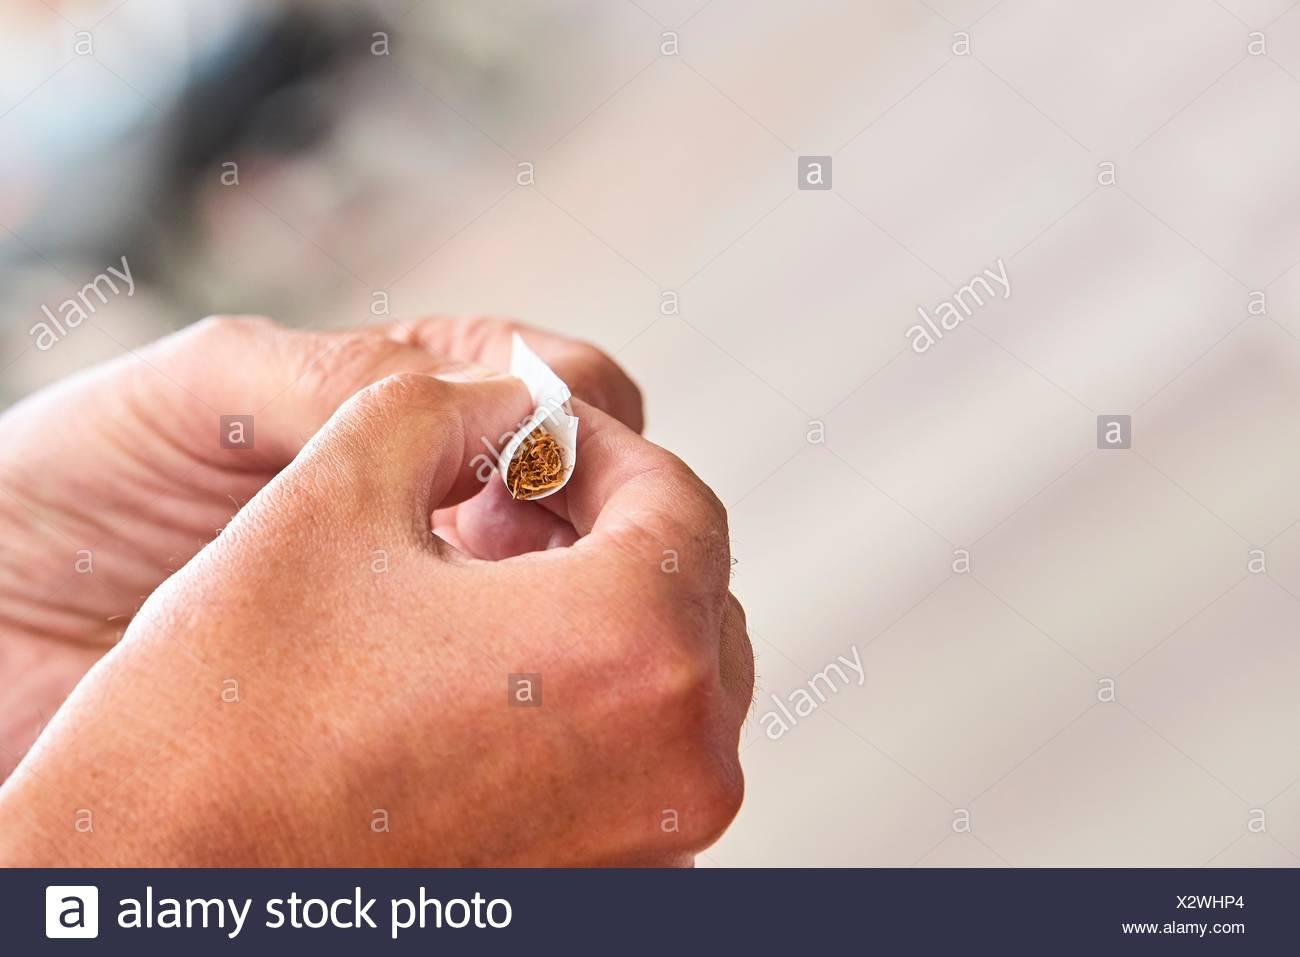 Hand with cigarette - Stock Image